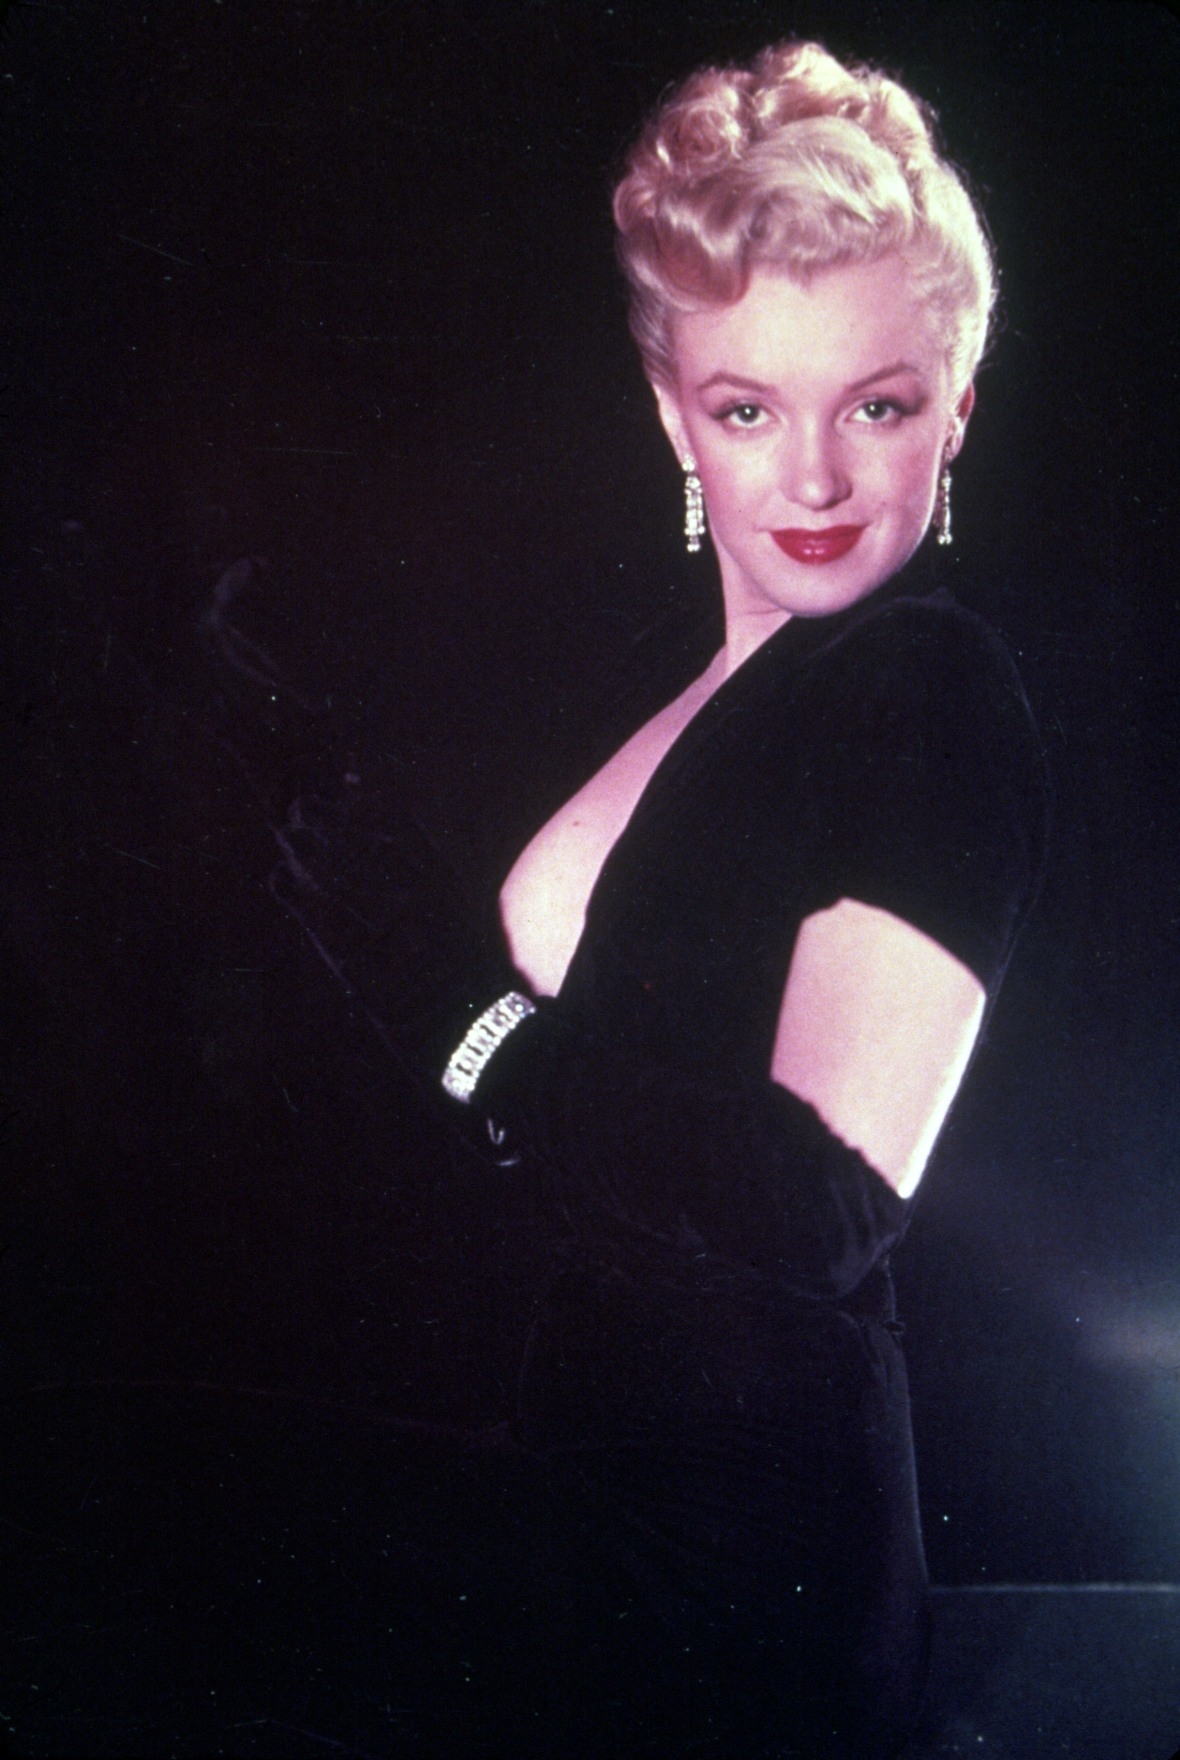 Marilyn Monroe in a Black Dress With Black Gloves